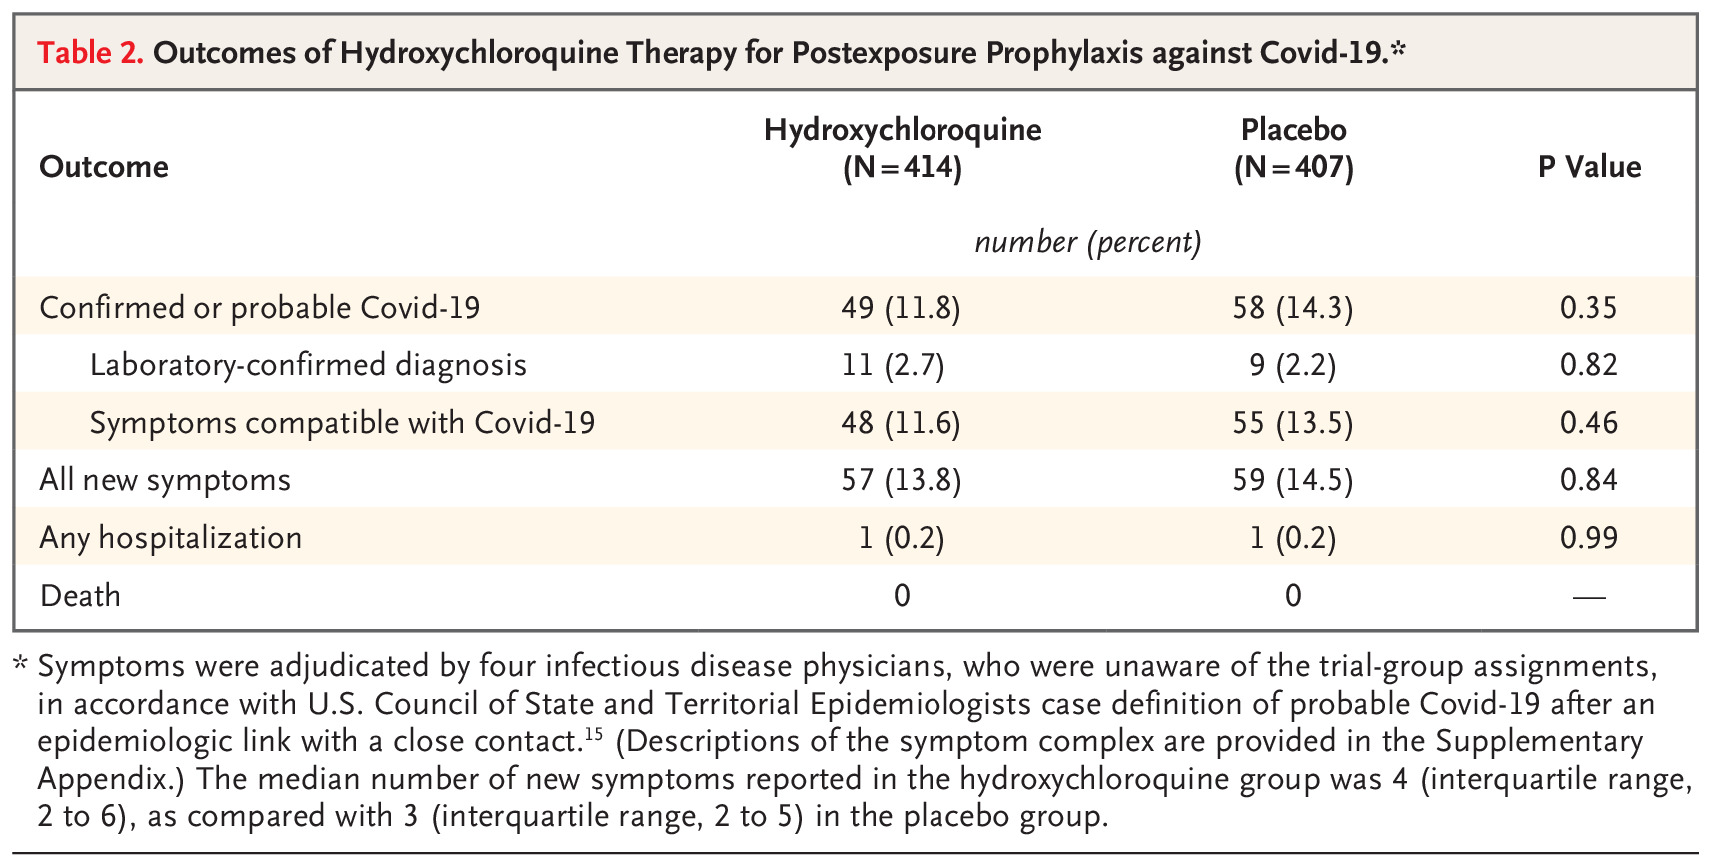 Randomized Double-Blind Trial Of Hydroxychloroquine Finds It's In The Placebo Range